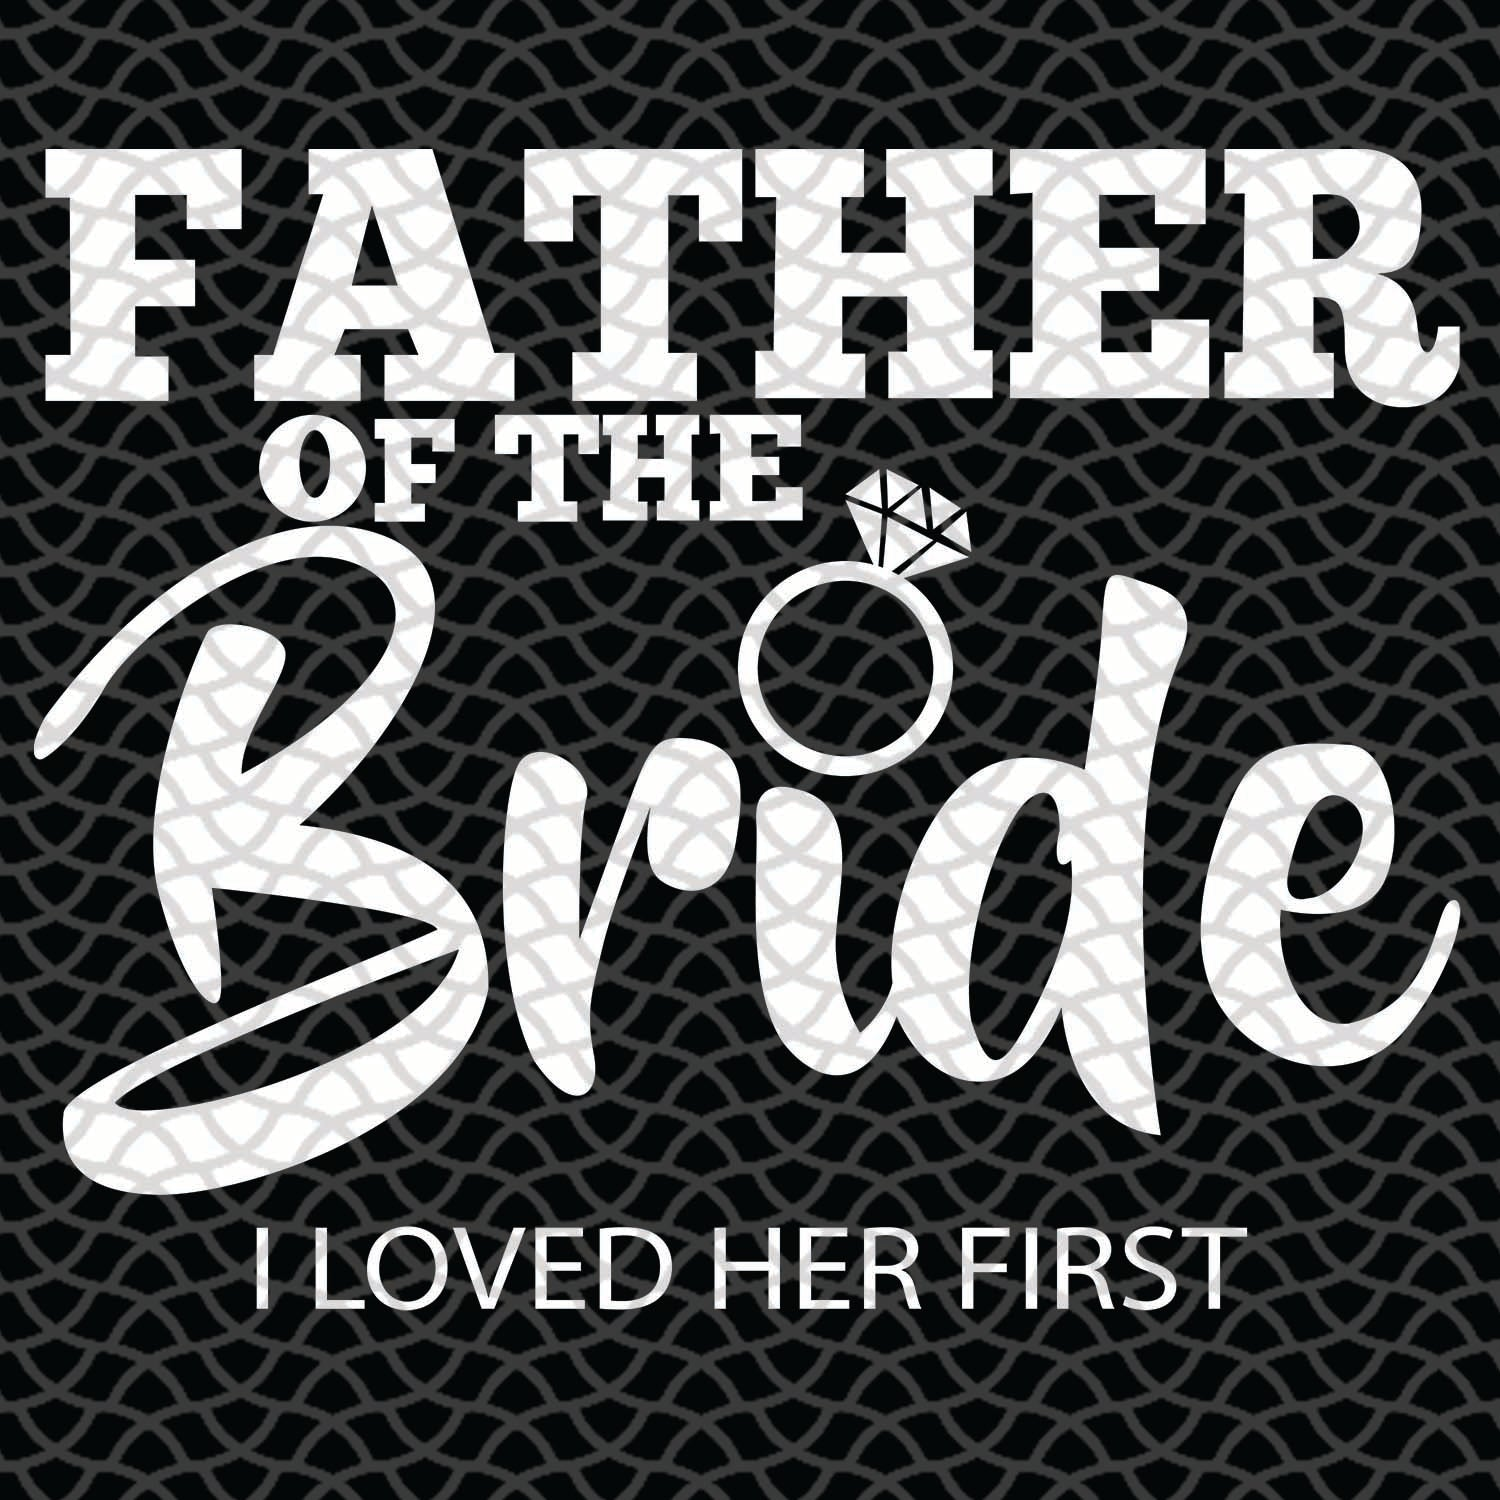 Father Of The Bride Svg,  Fathers Day Svg, Dad Svg, Gift For Dad Svg, Gift For Papa Svg, Fathers Day Gift Svg, Fathers Day Lover Svg, Gifts For Him Svg, Files For Silhouette, Files For Cricut, SVG, DXF, EPS, PNG, Instant Download